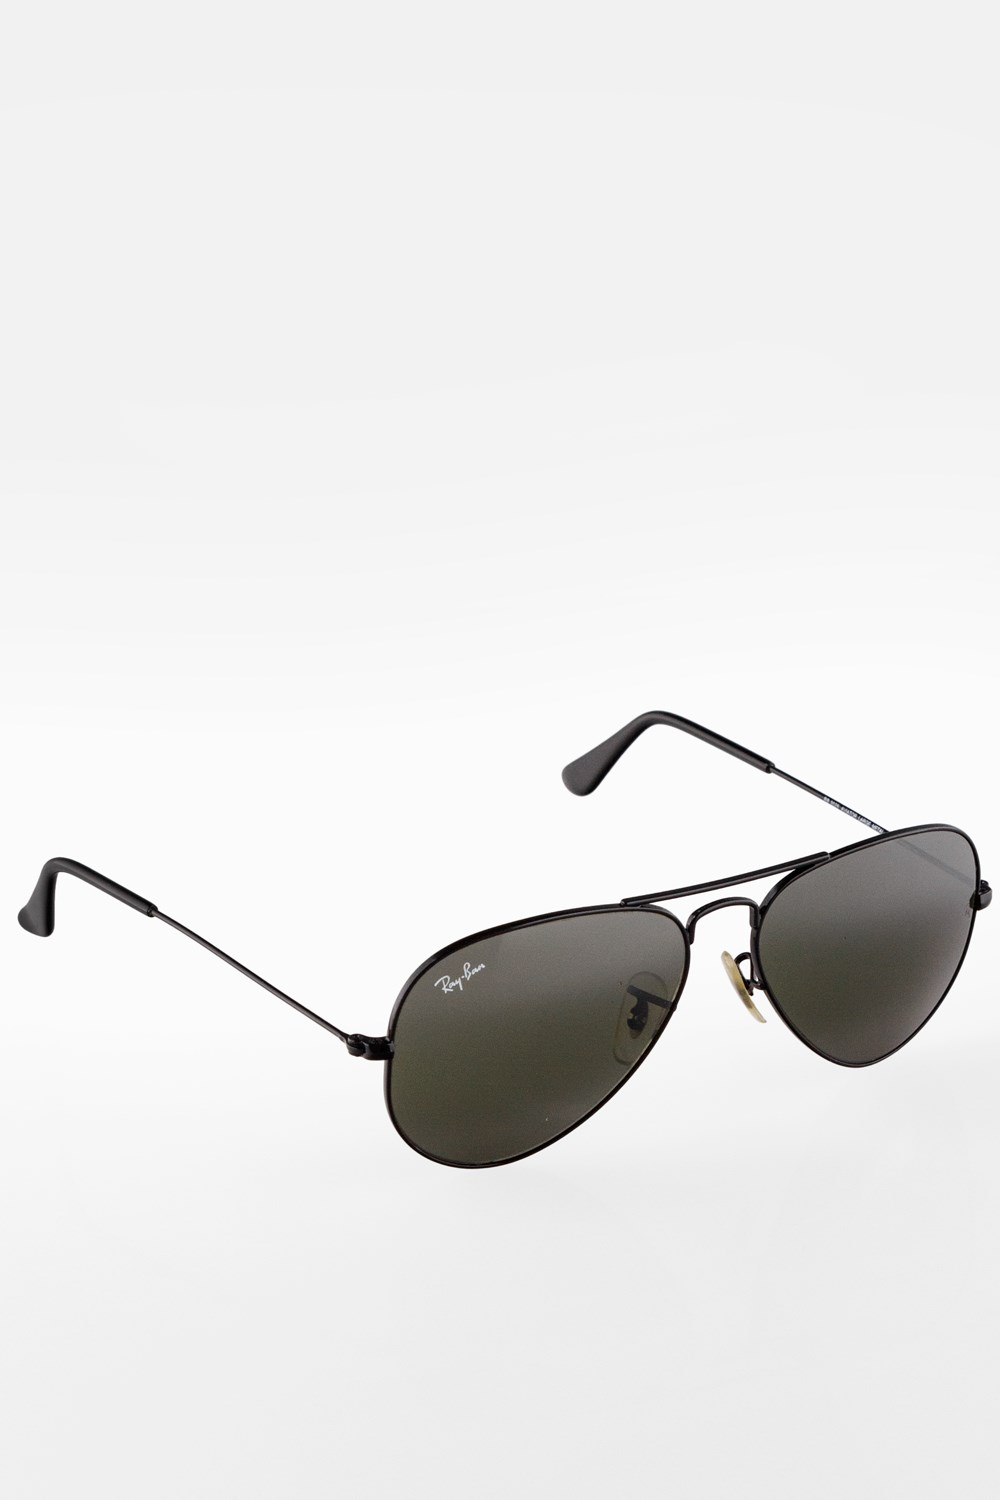 Starbags Products, Accessories, Sunglasses, Aviator, RB3025 Black Aviator Metal Sunglasses, Starbags.gr